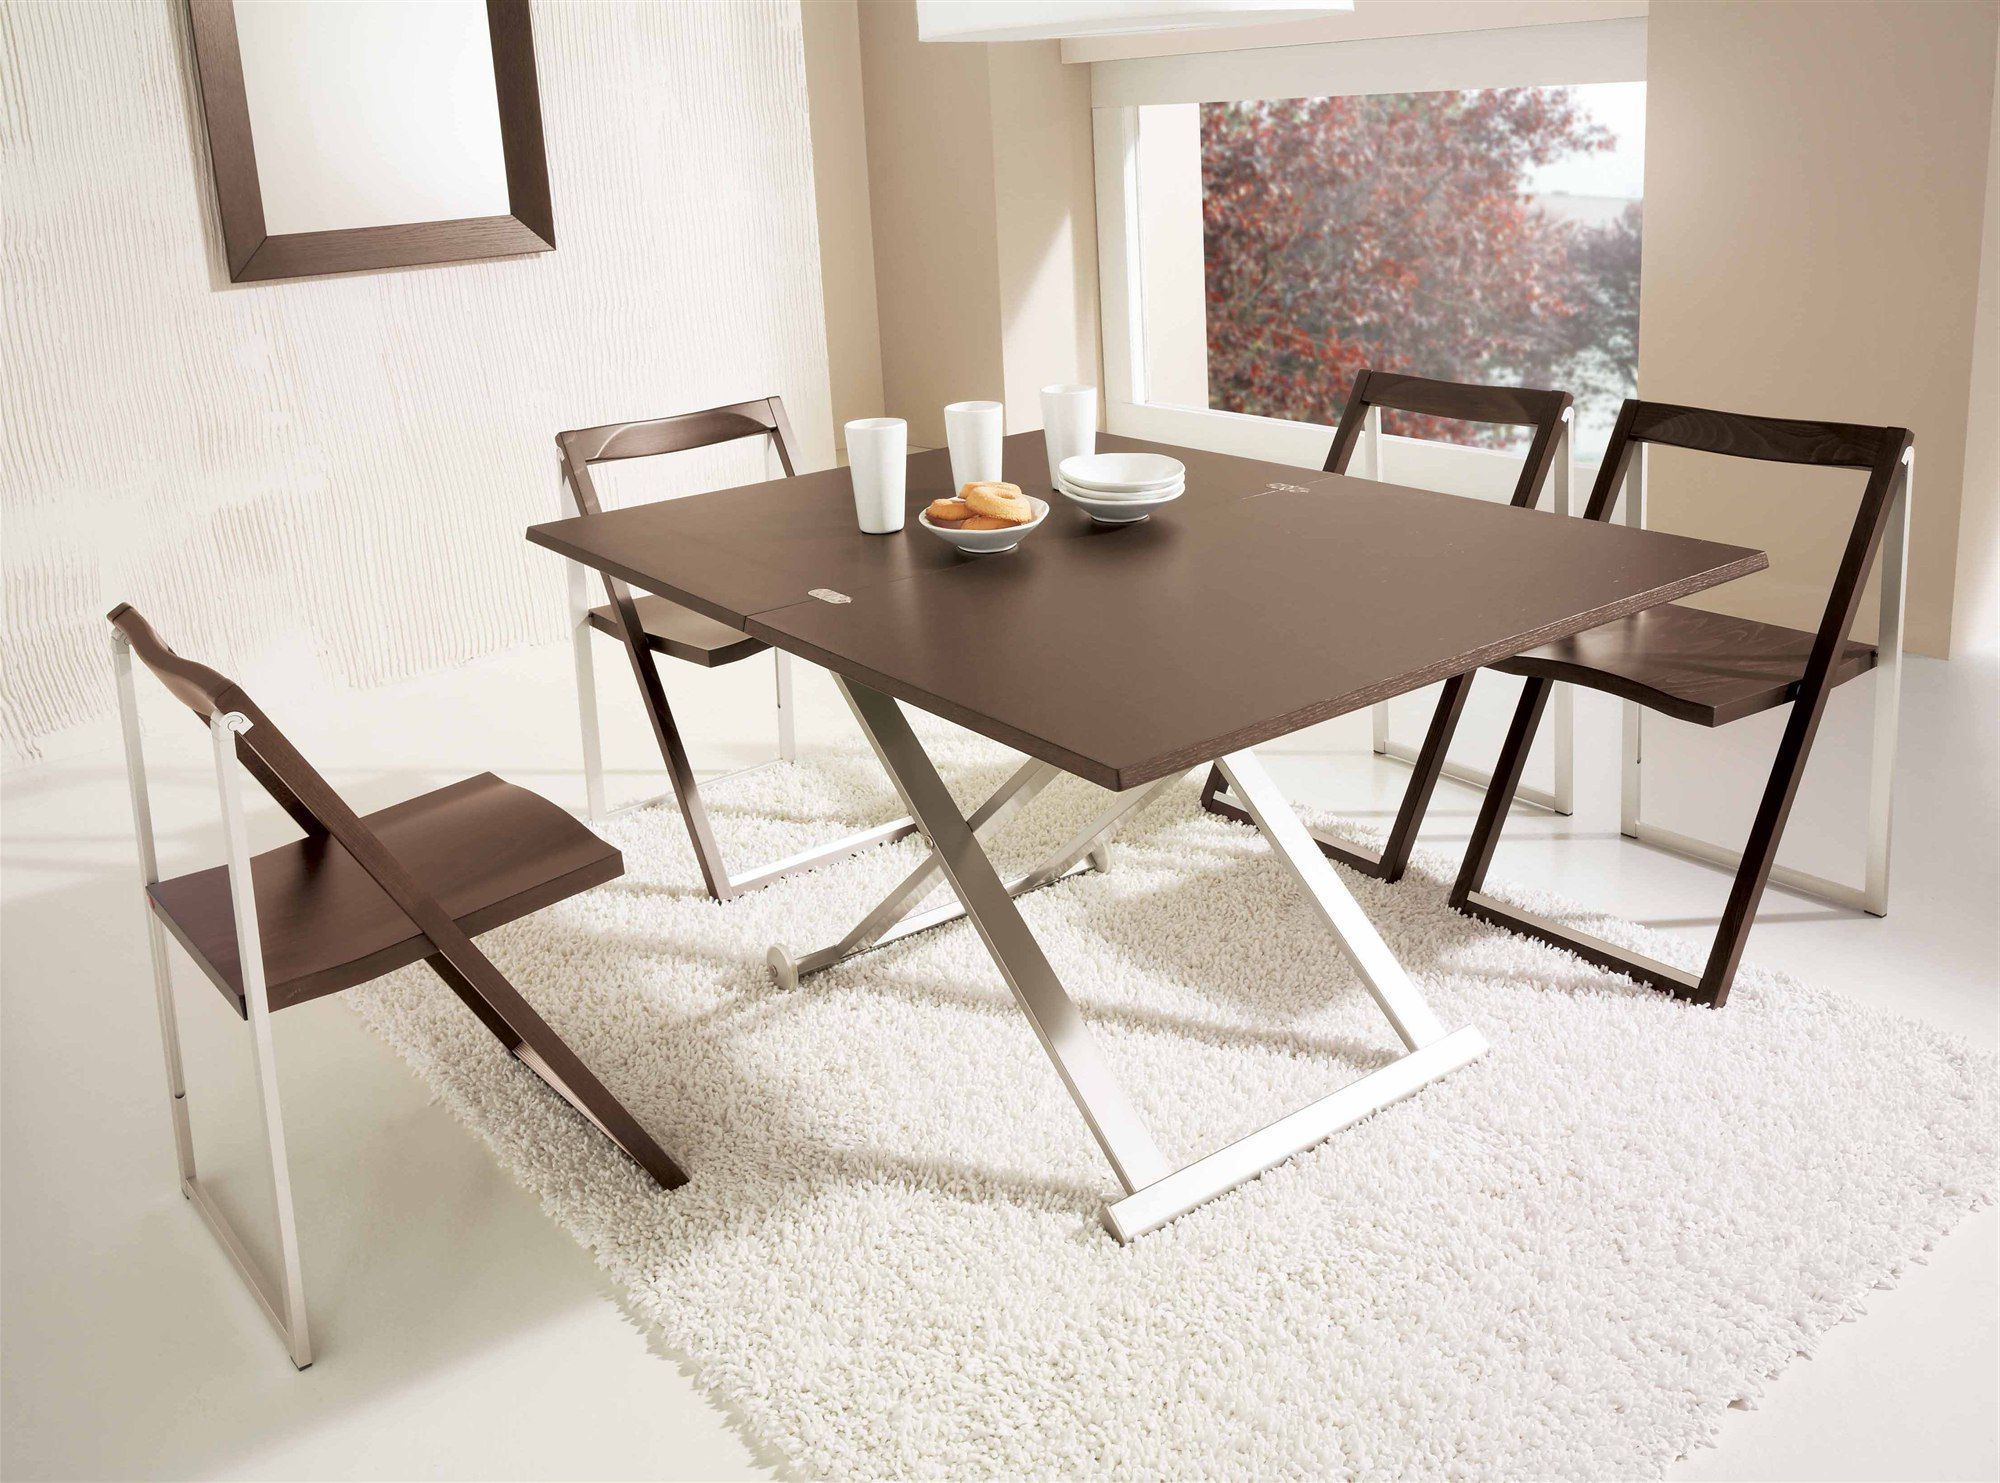 Furniture Cool Simple Modern Stylish Foldable Dinner Table Sets